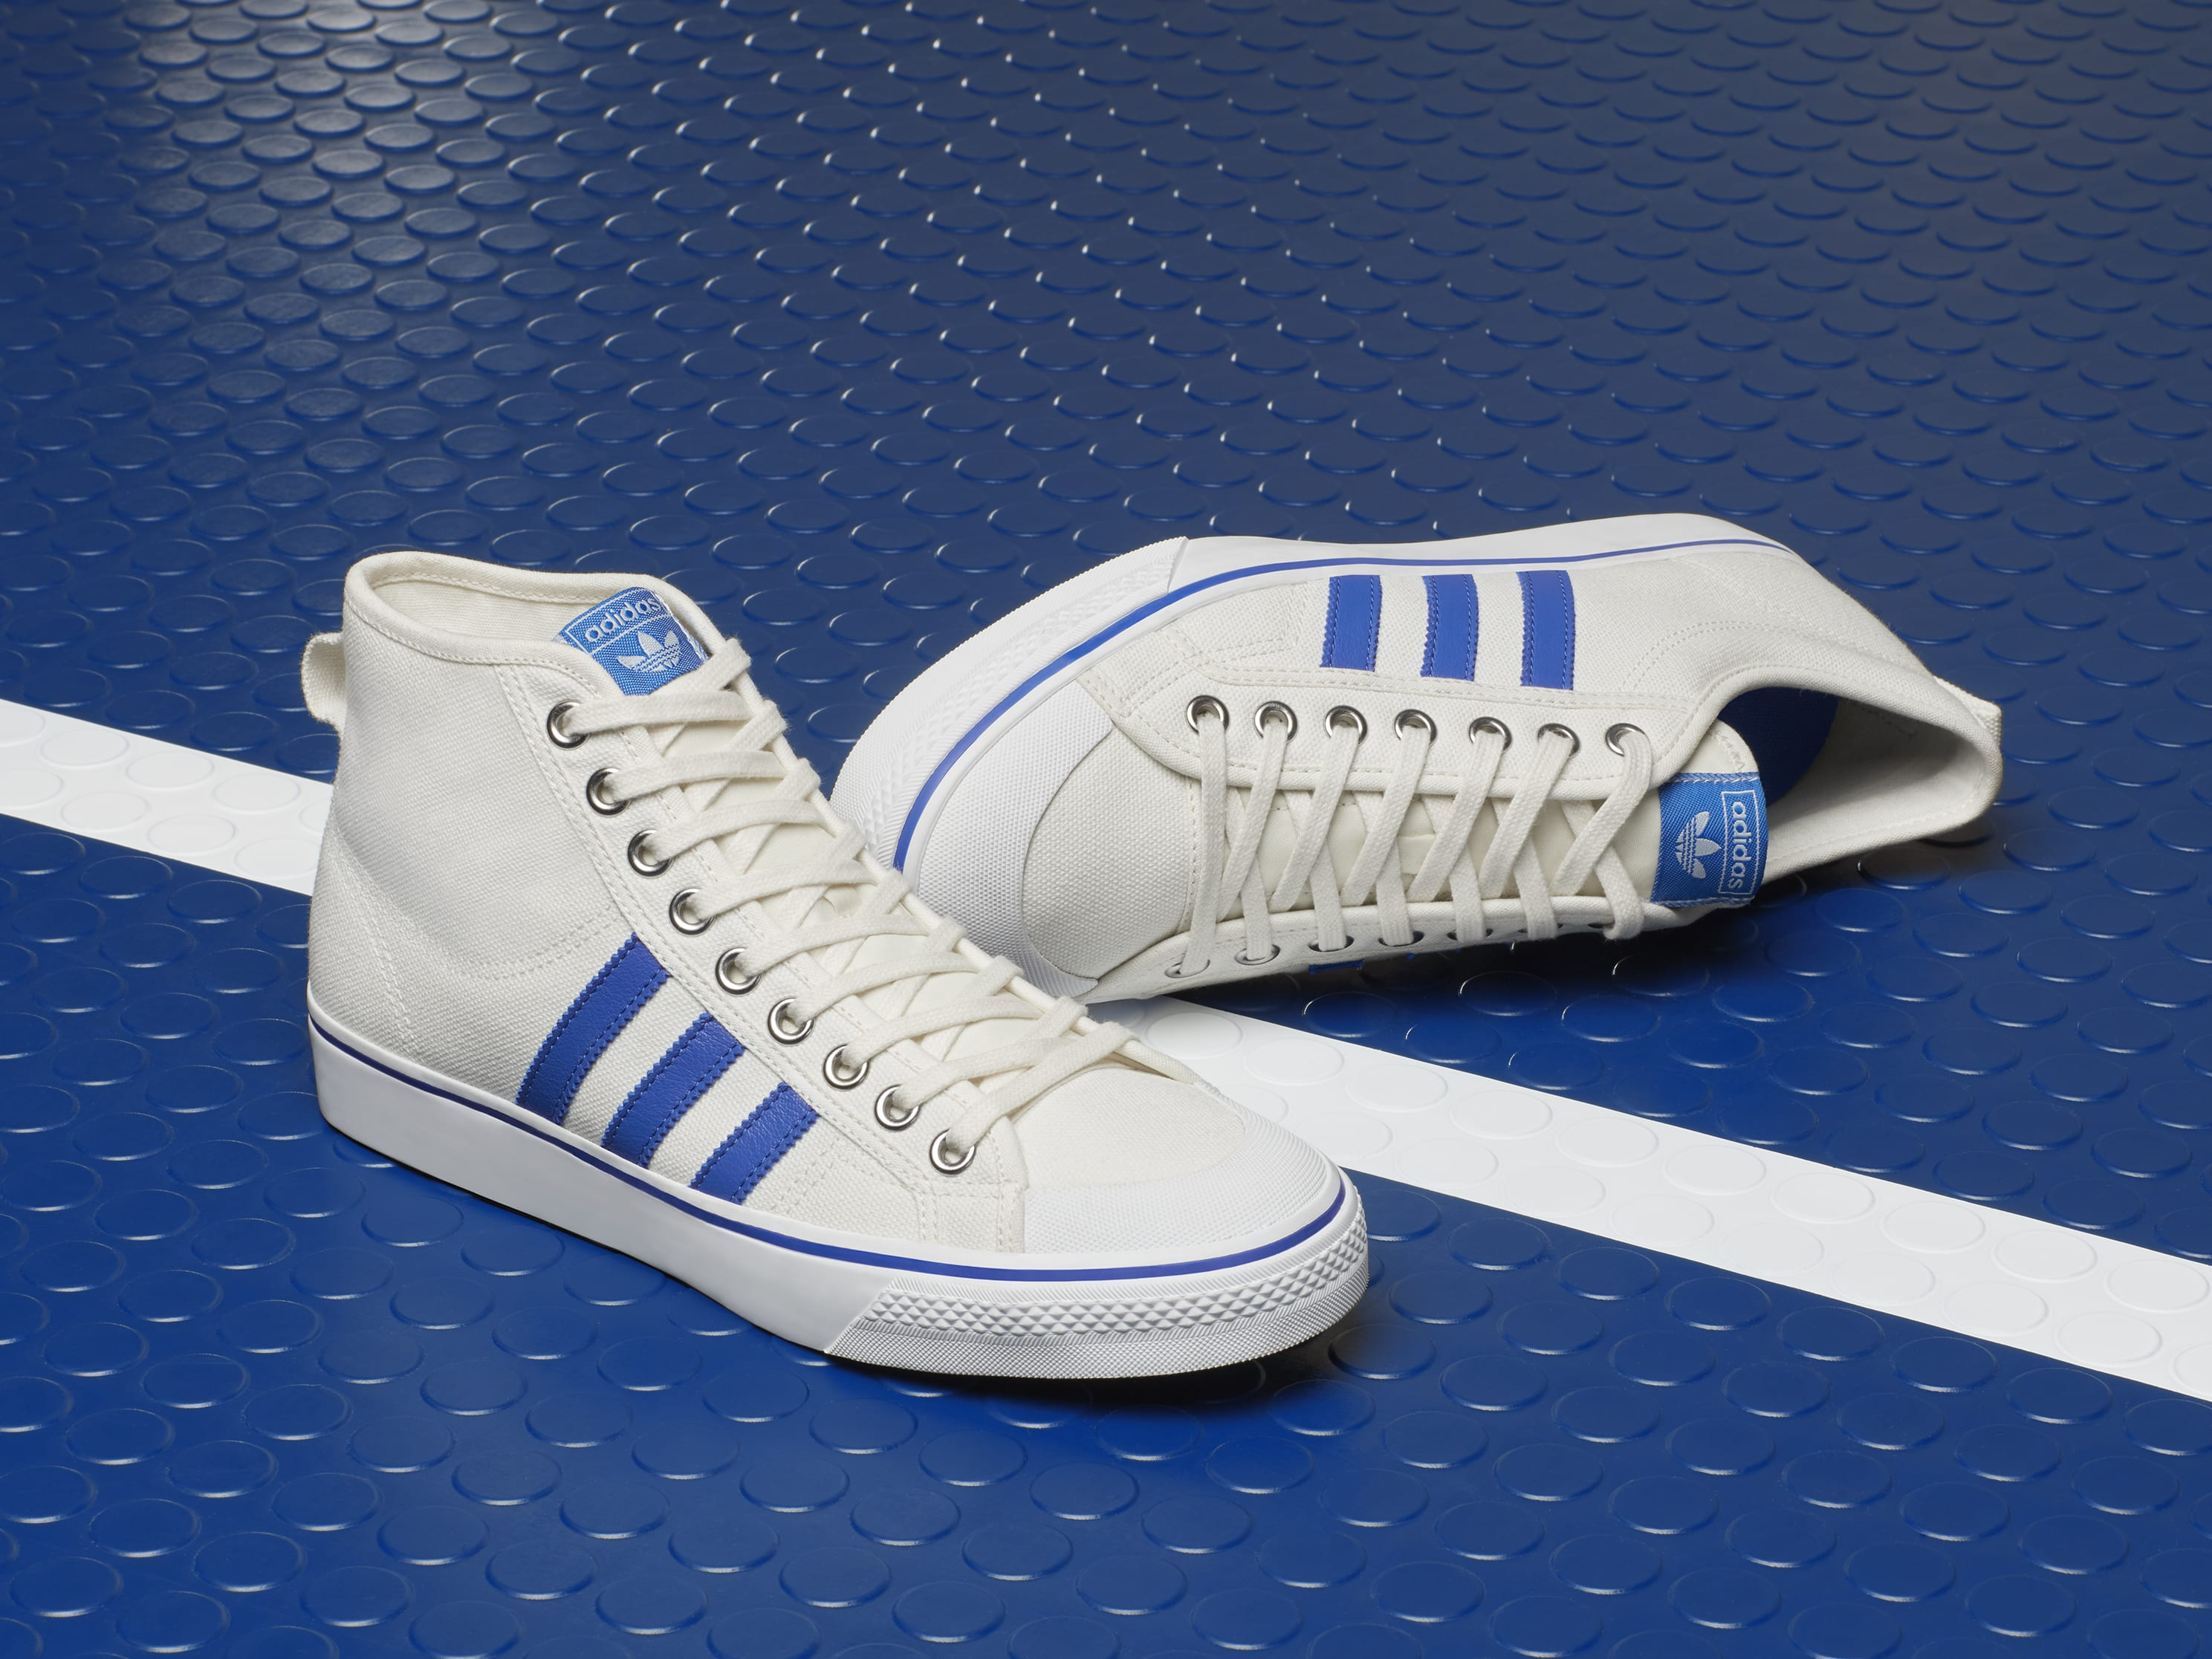 27f4f3a4bbc 1970 s classic green striped adidas shoes